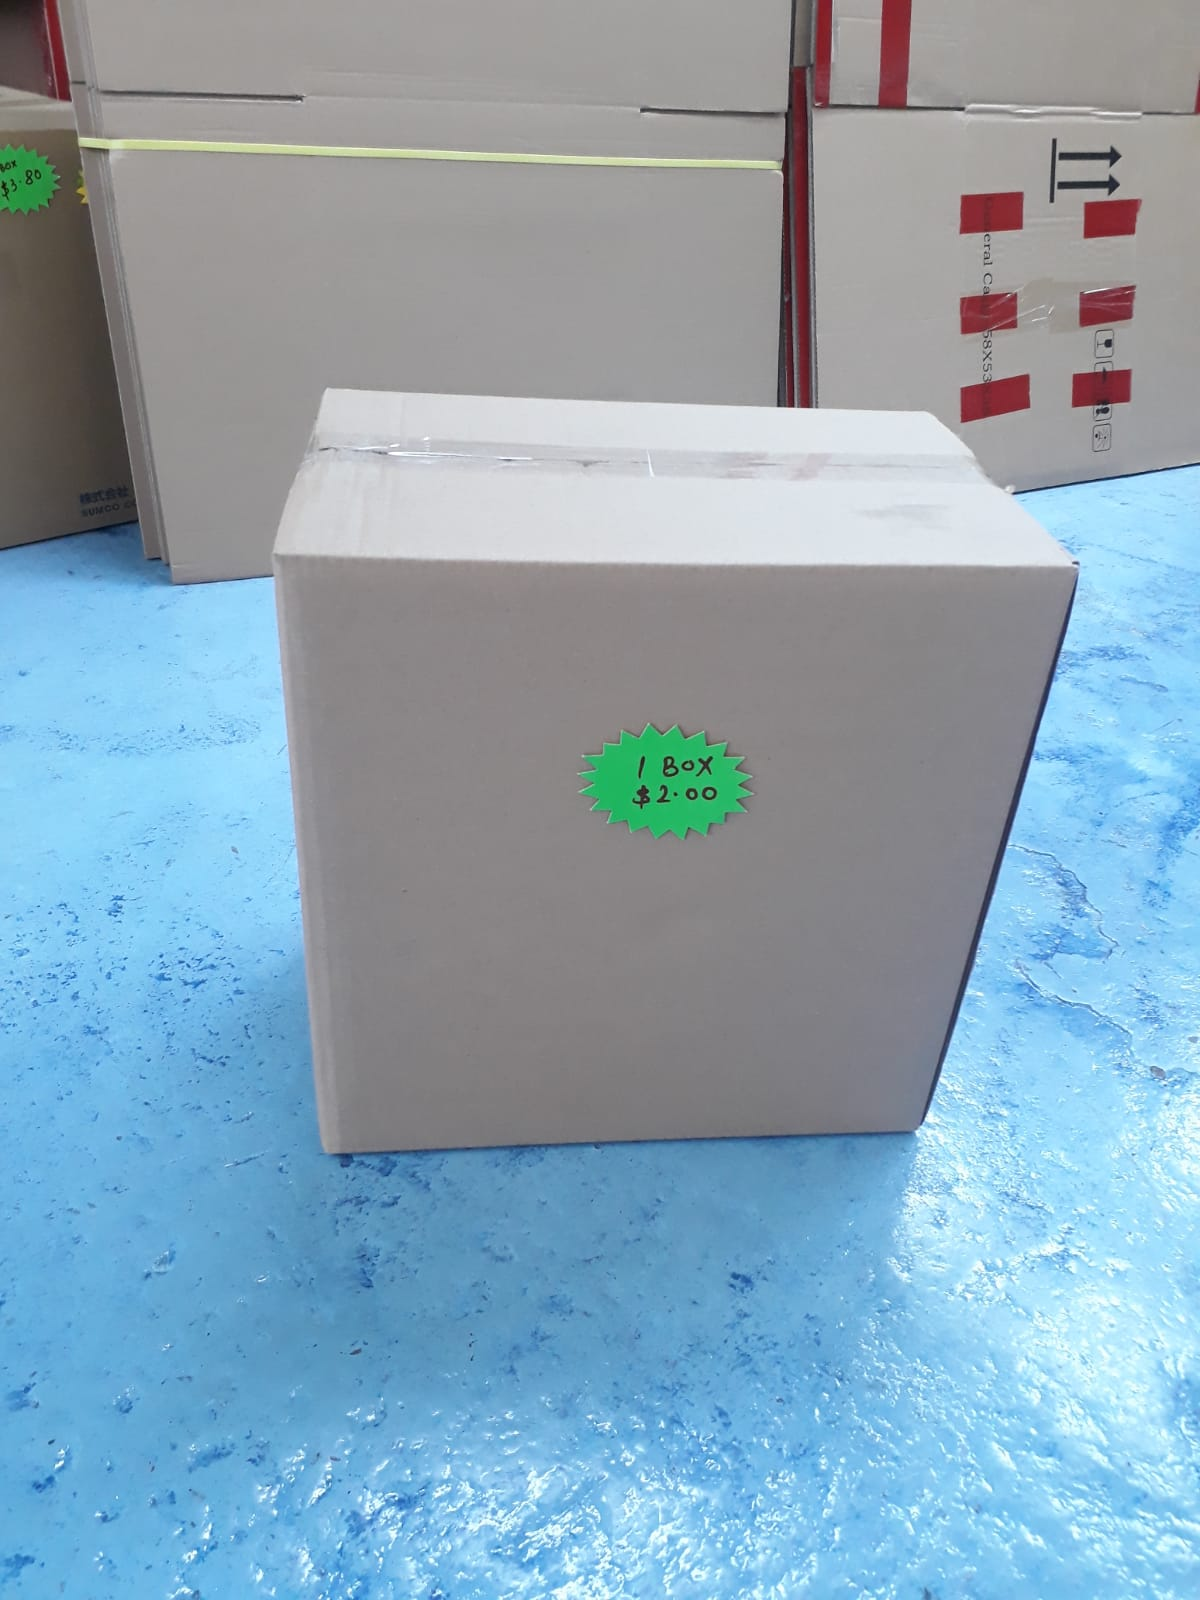 New Carton Box Small  (S) Size 38x26x39cmH - CartonBox.Sg